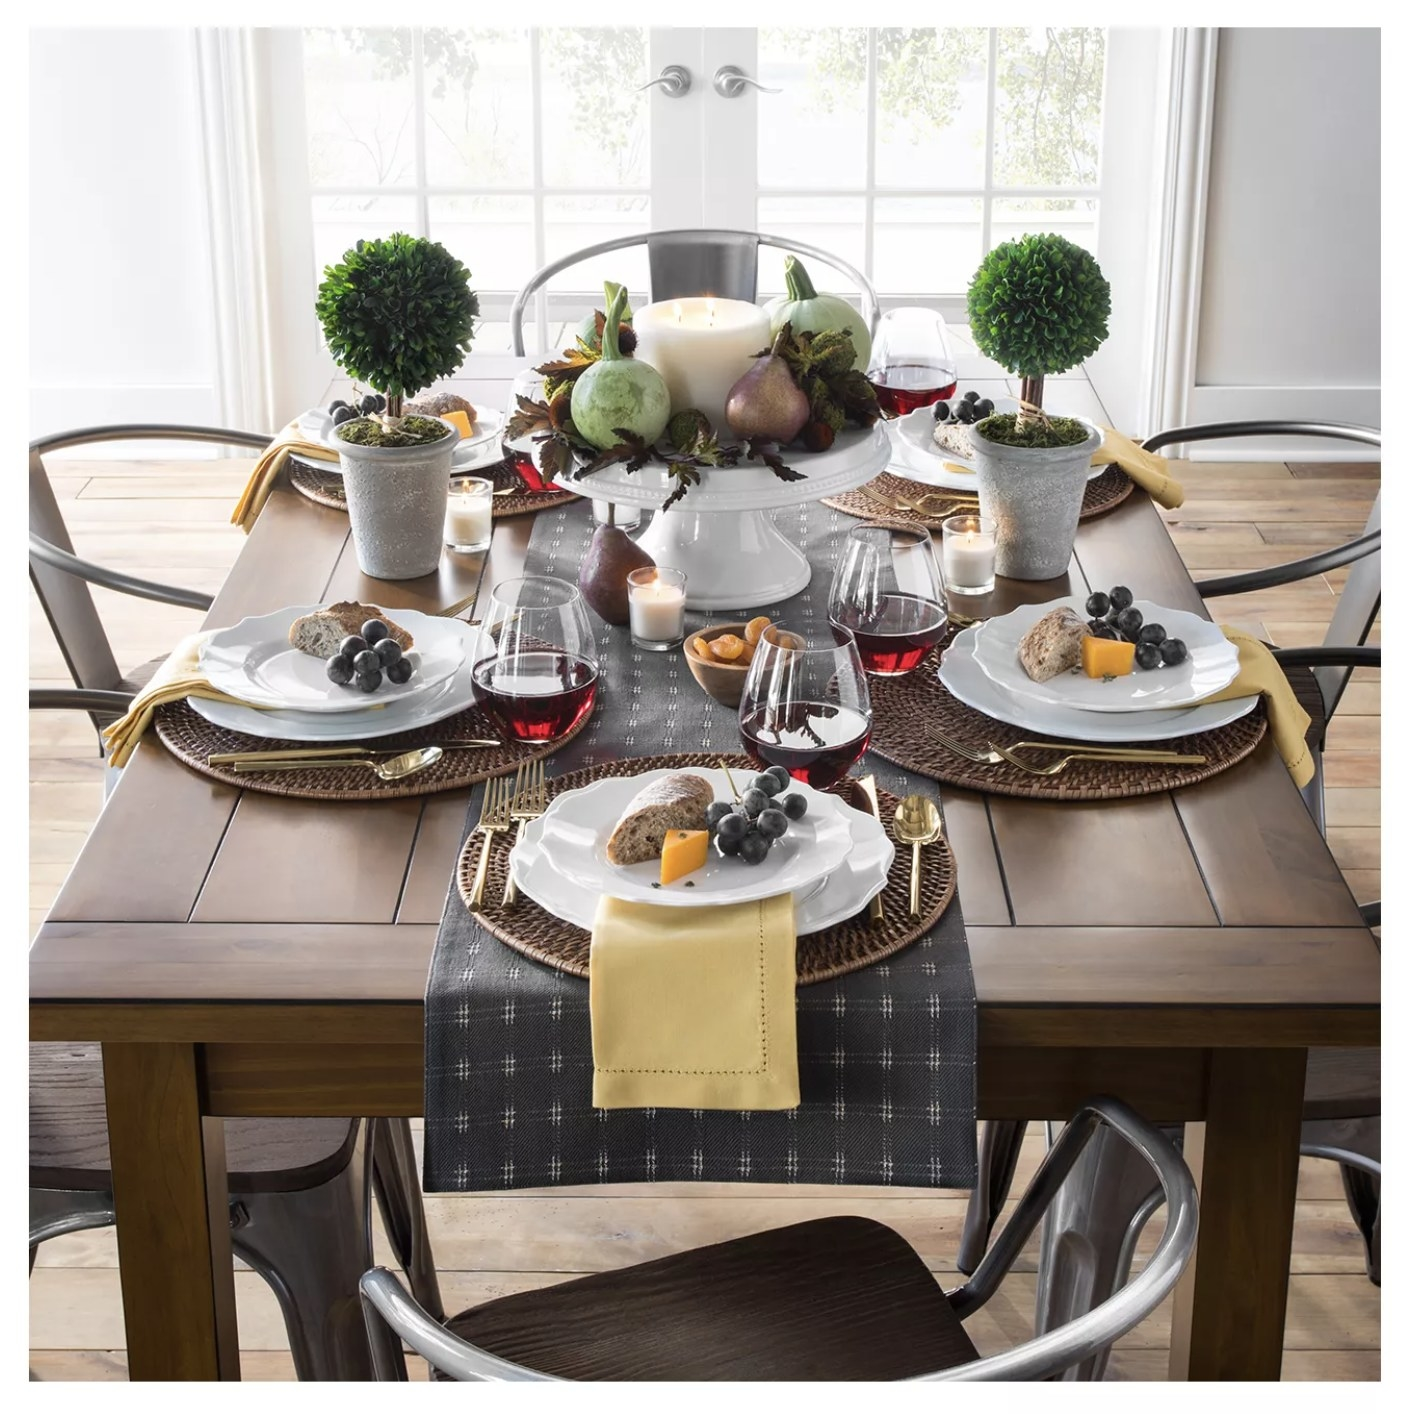 The wood dining table